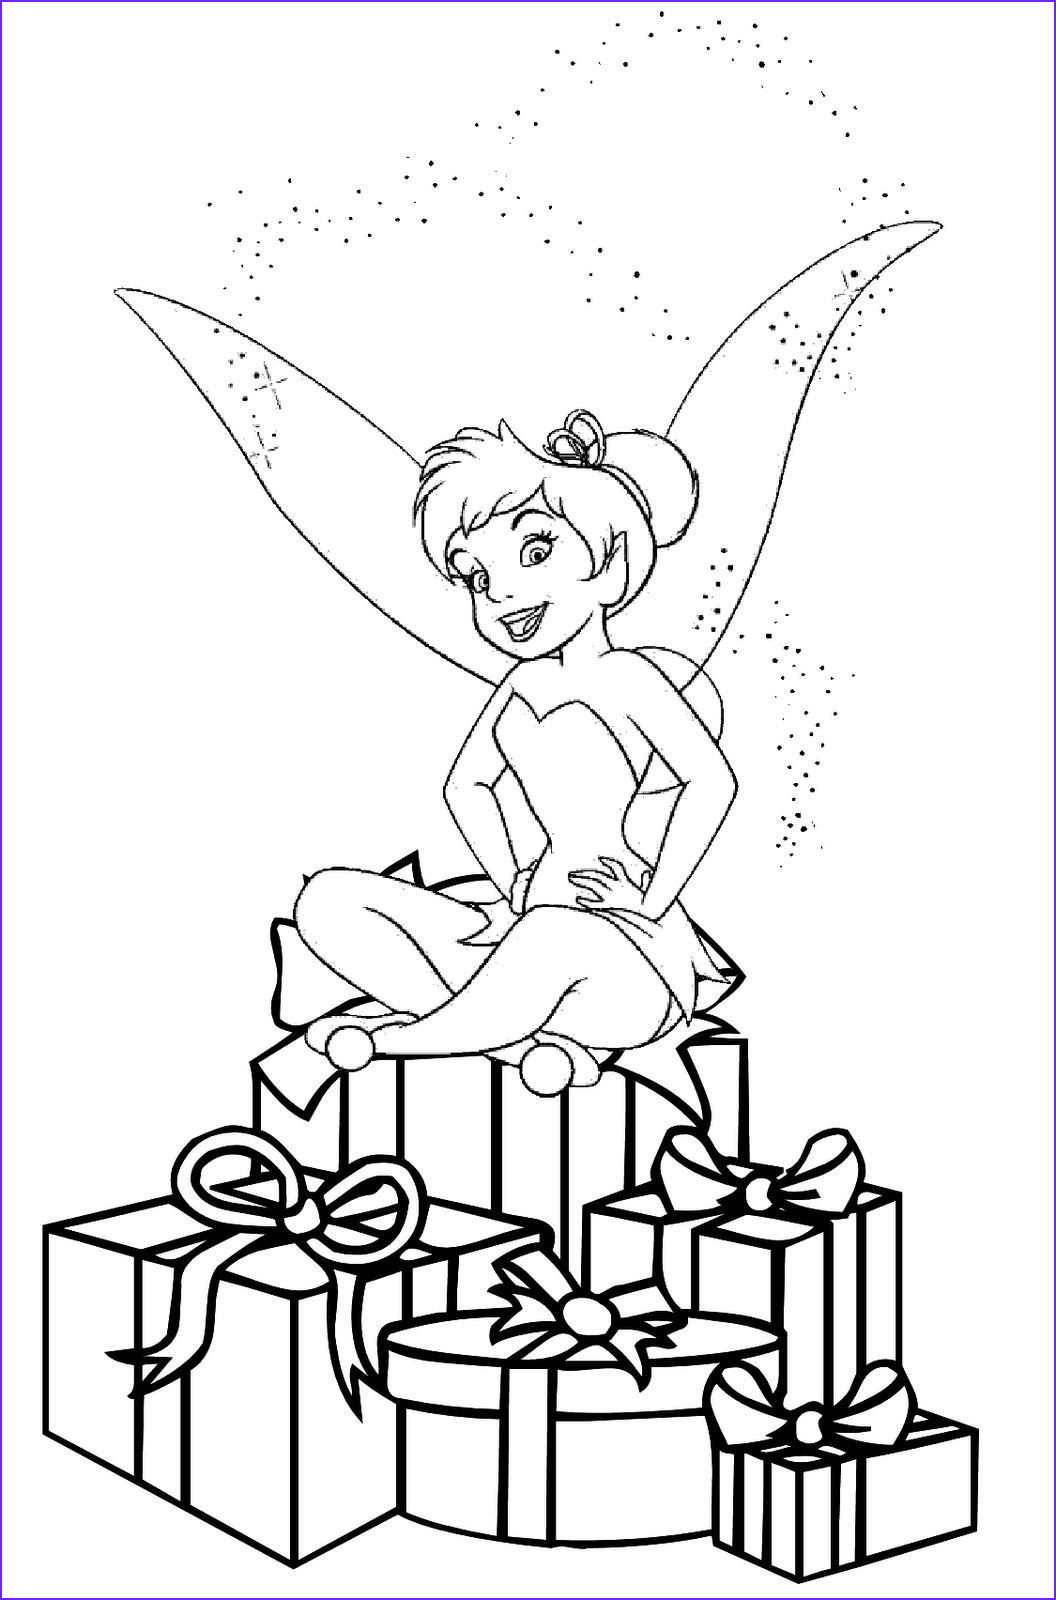 Christmas Coloring Beautiful Images Christmas Coloring Pages